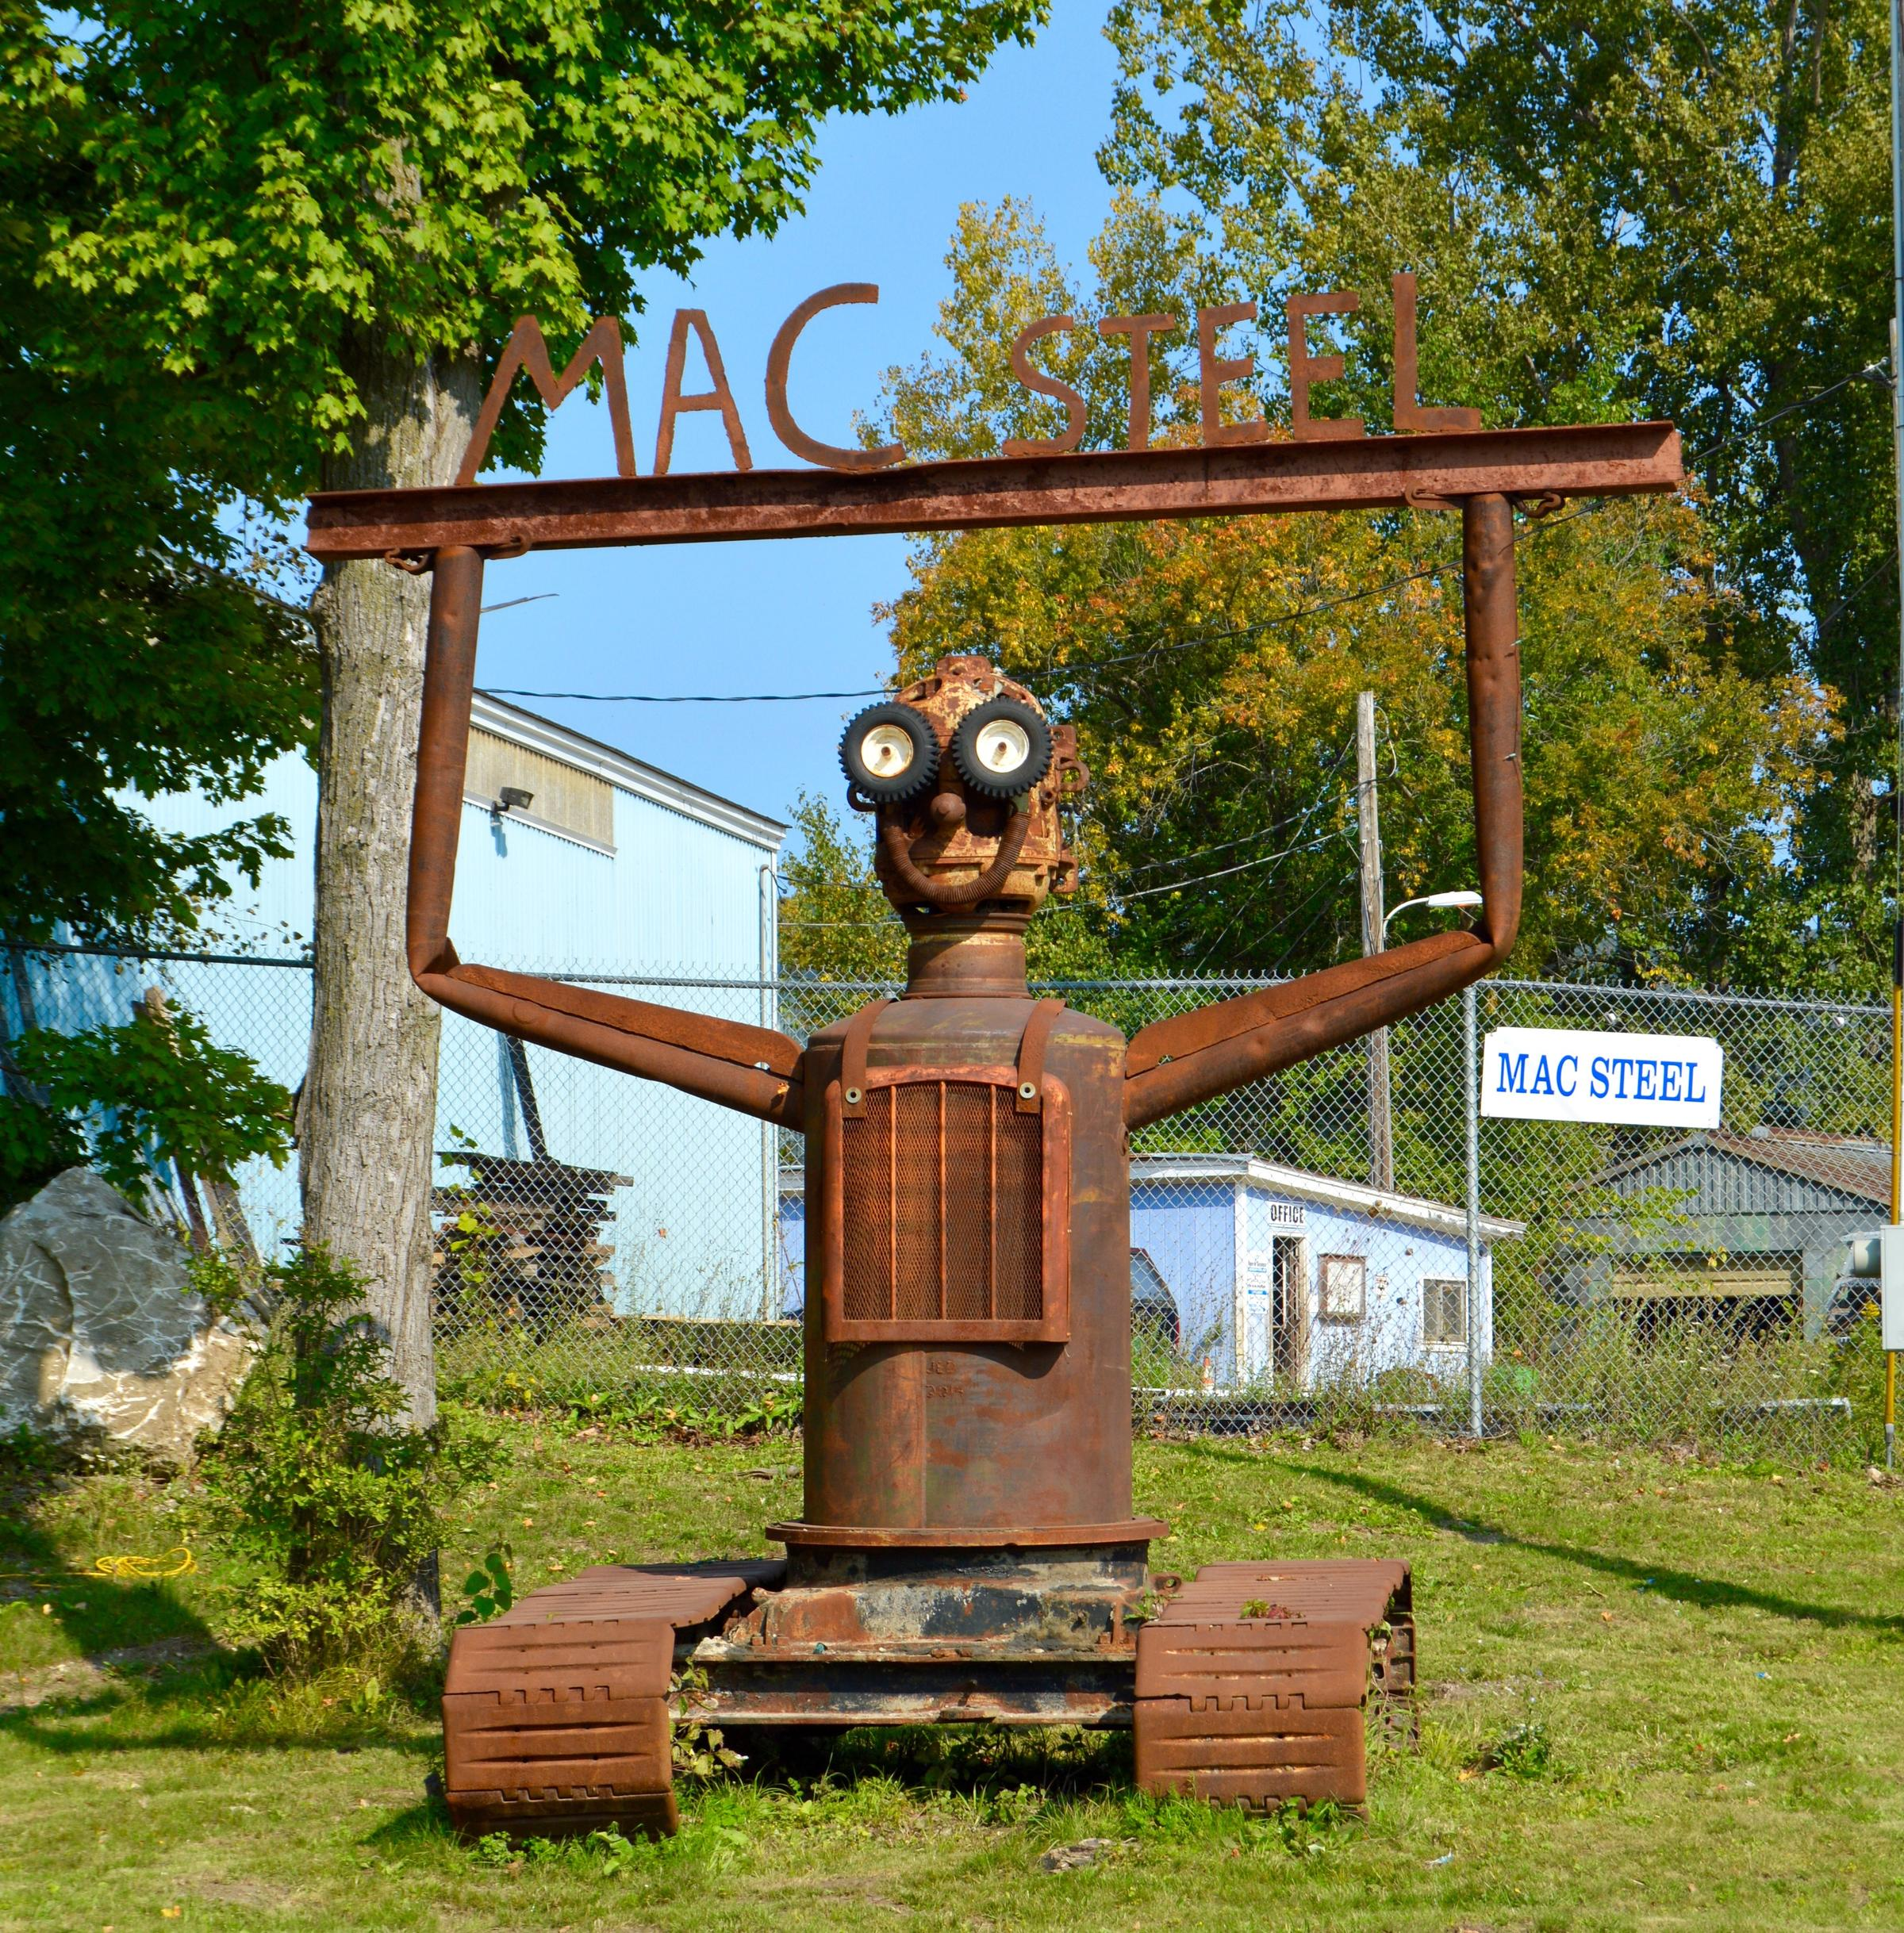 An Oversized Metal Robot Greets Those Who Enter Mac Equipment And Steel In Rutland The View Slideshow 1 Of 3